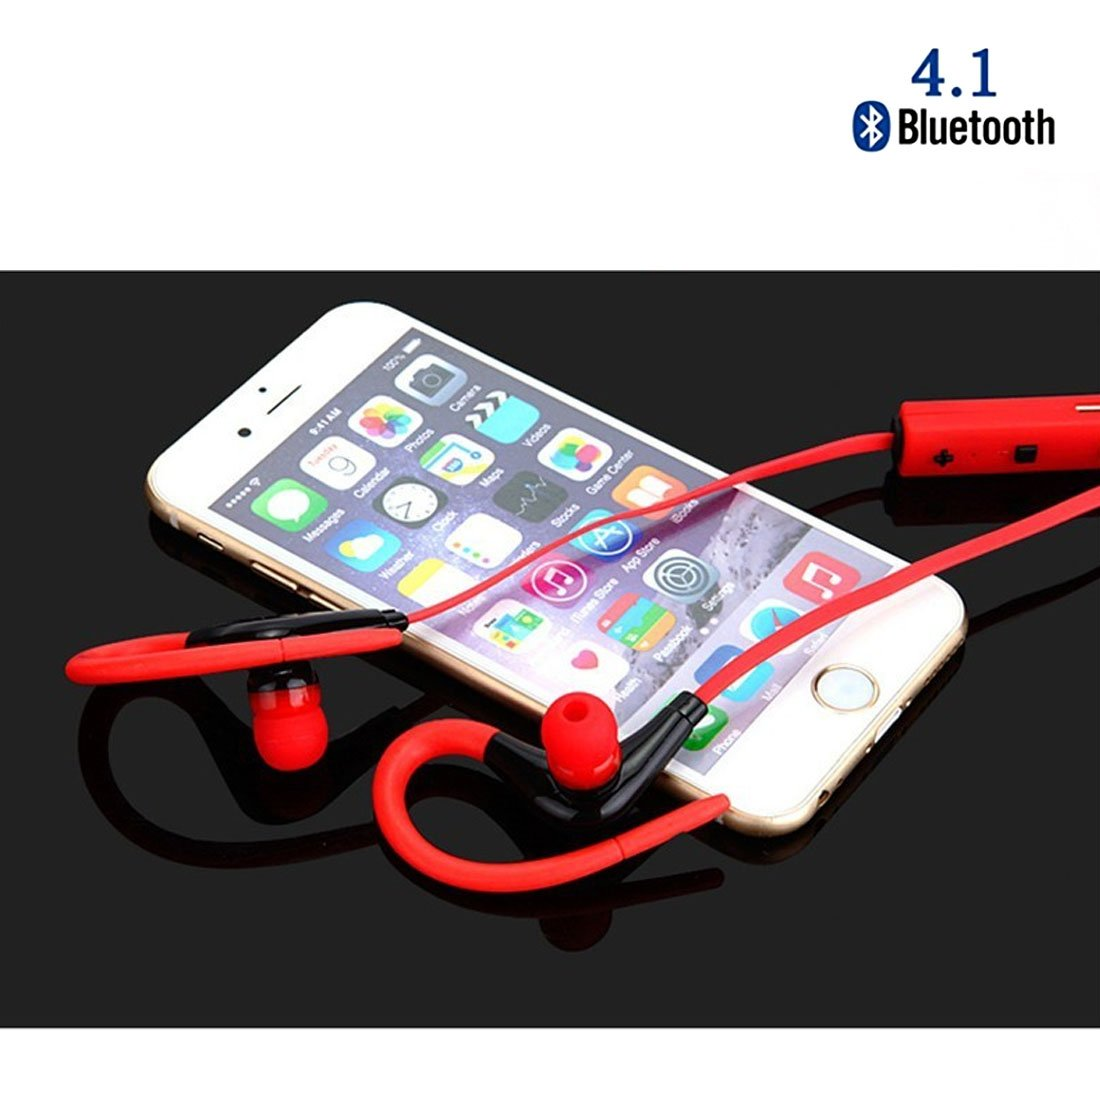 10M Wireless Bluetooth 4.0 Sweatproof Sports Earphone Cancelling Noise ,Toolisi Stereo Bass In-ear Earbuds w/ Microphone Stable Bluetooth Connect Headset 6Hour Working Time for Phones Running Gym -Red